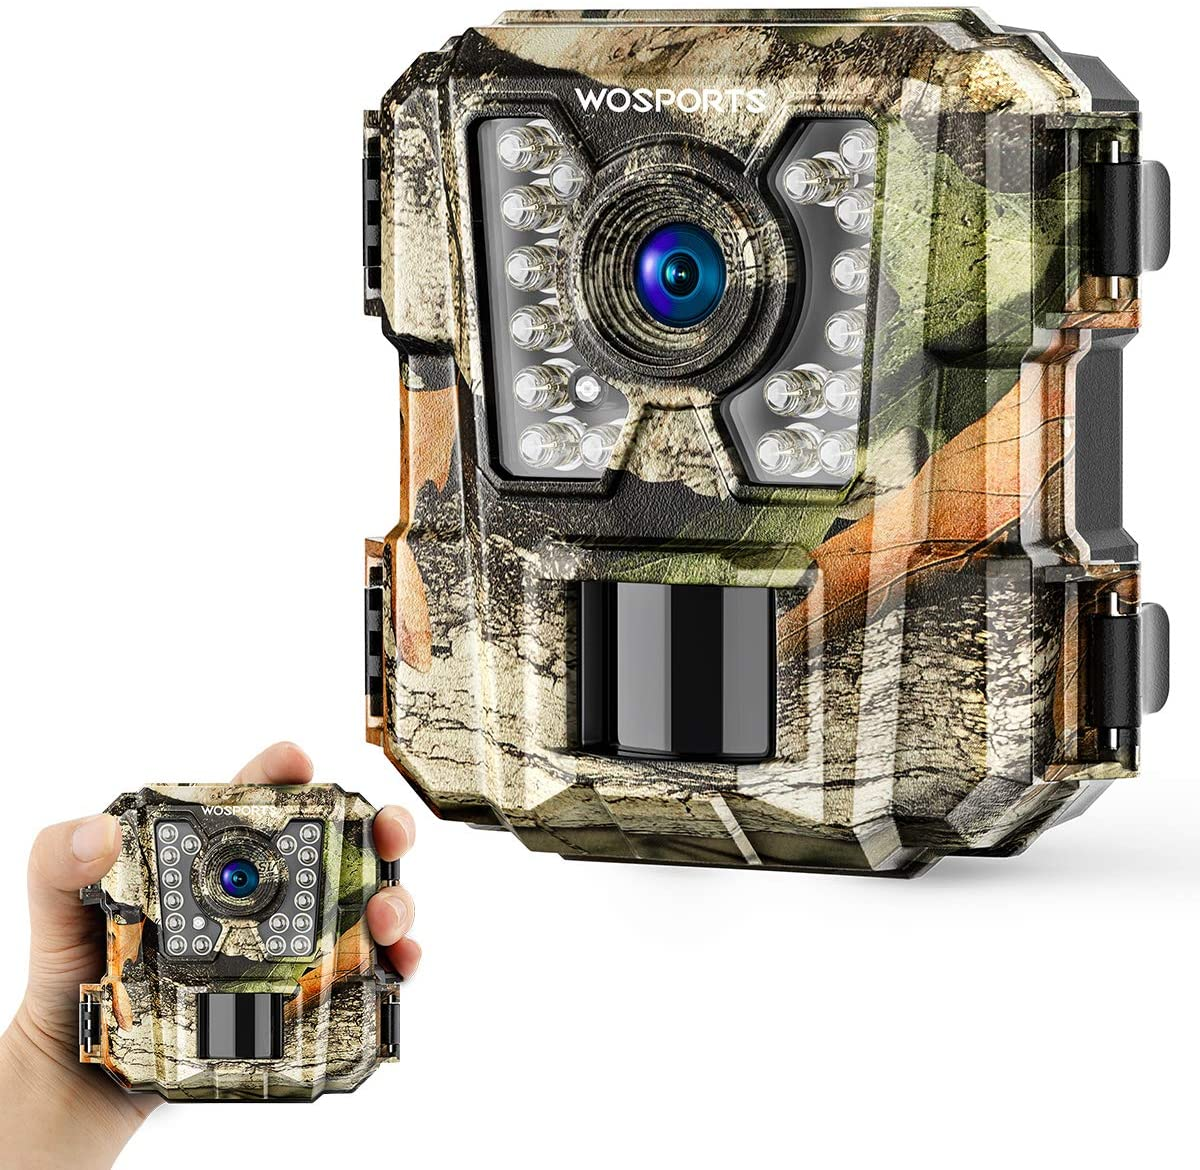 Wosports High Resolution Outdoor Trail Camera